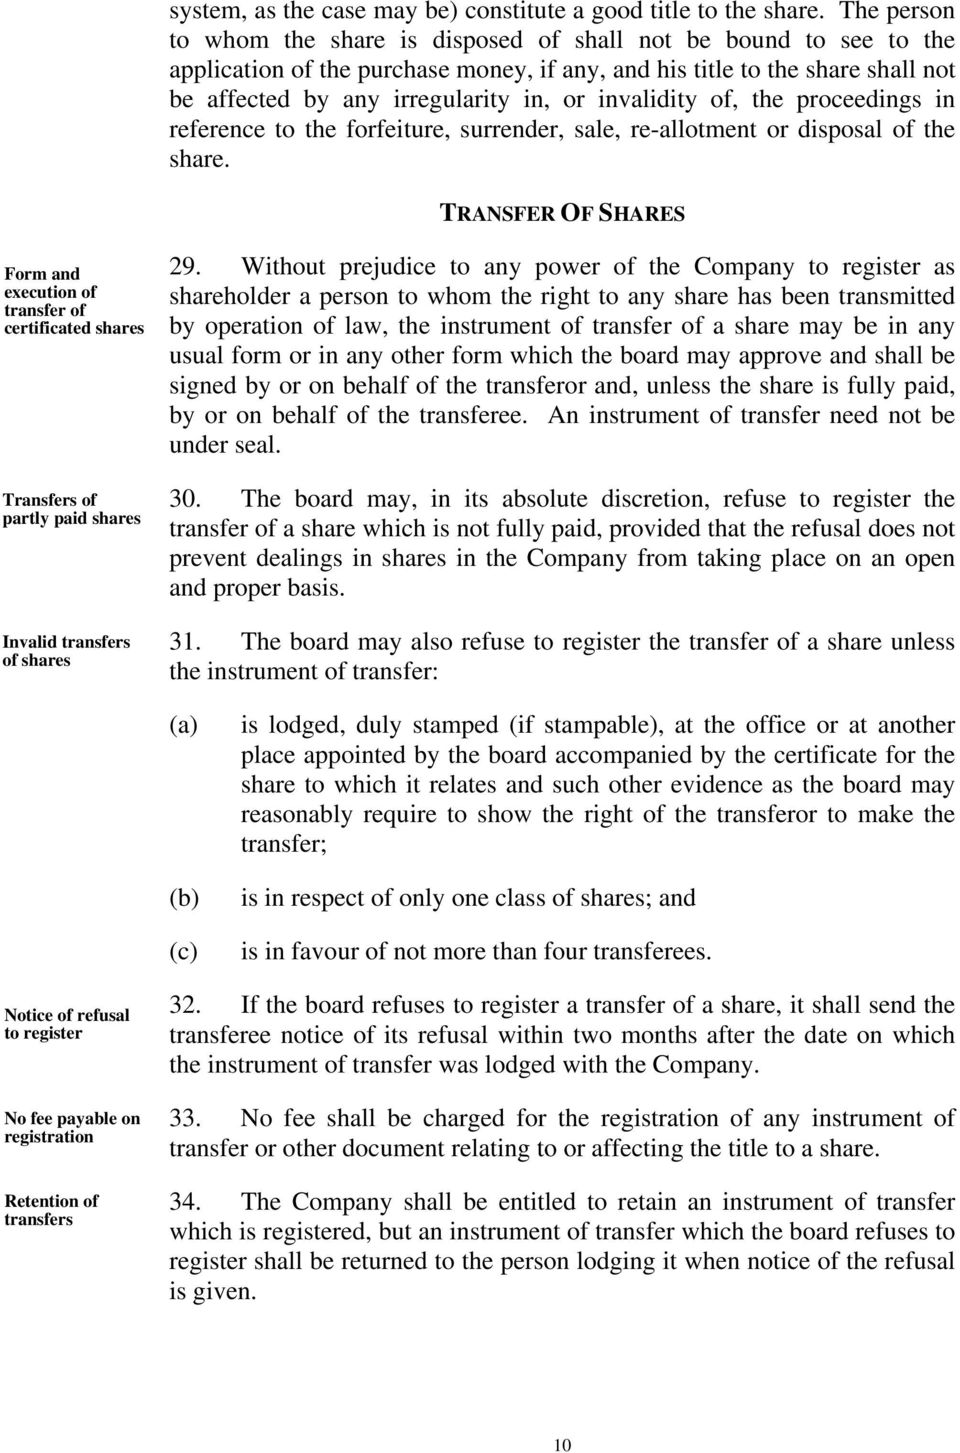 invalidity of, the proceedings in reference to the forfeiture, surrender, sale, re-allotment or disposal of the share.